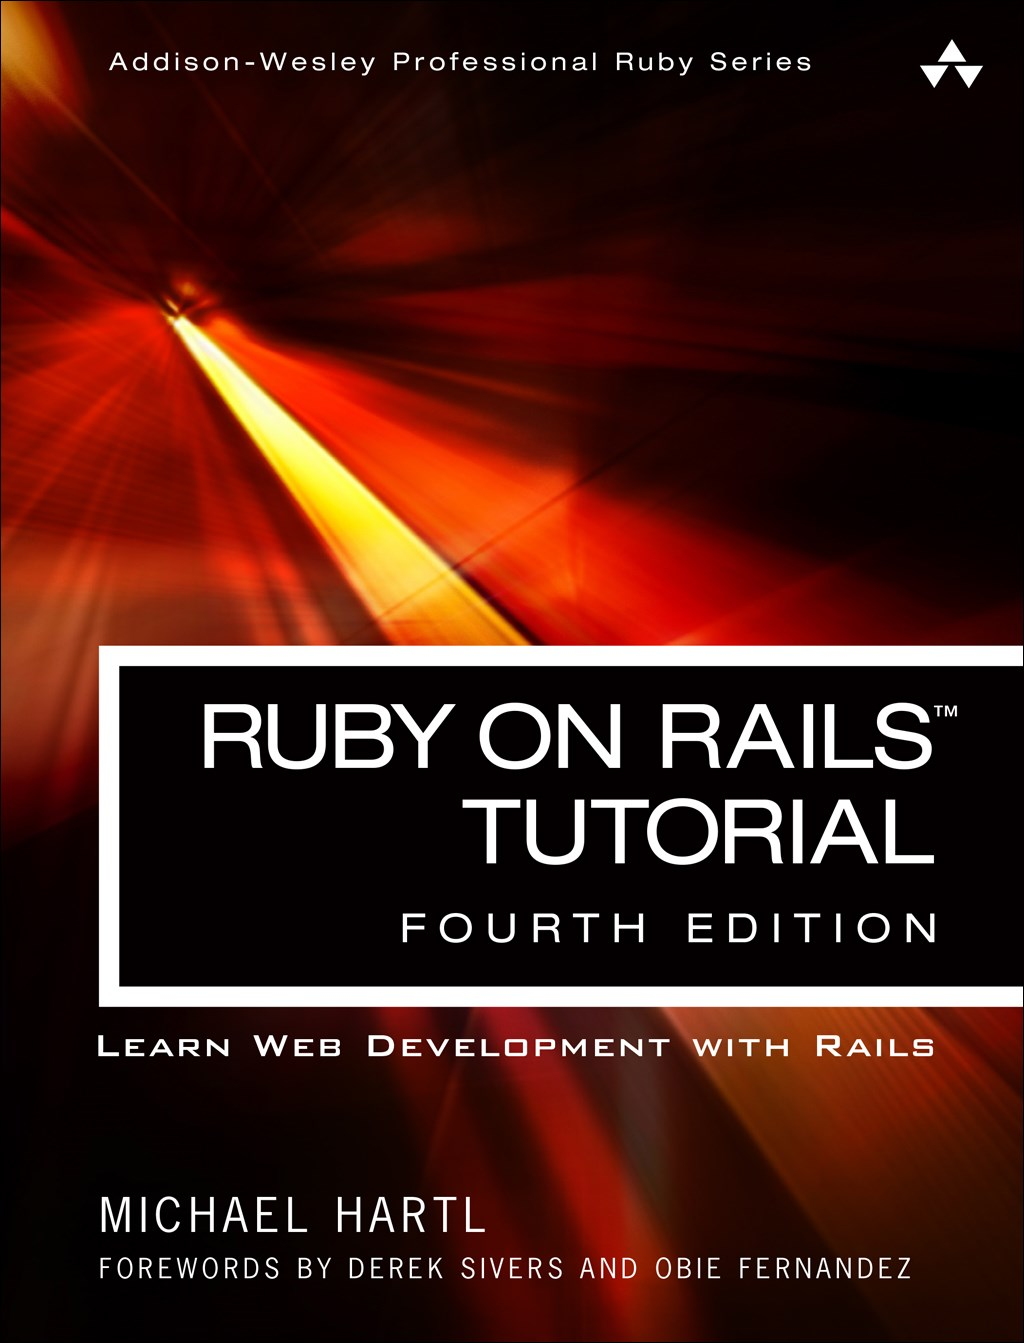 Ruby on Rails Tutorial: Learn Web Development with Rails, 4th Edition